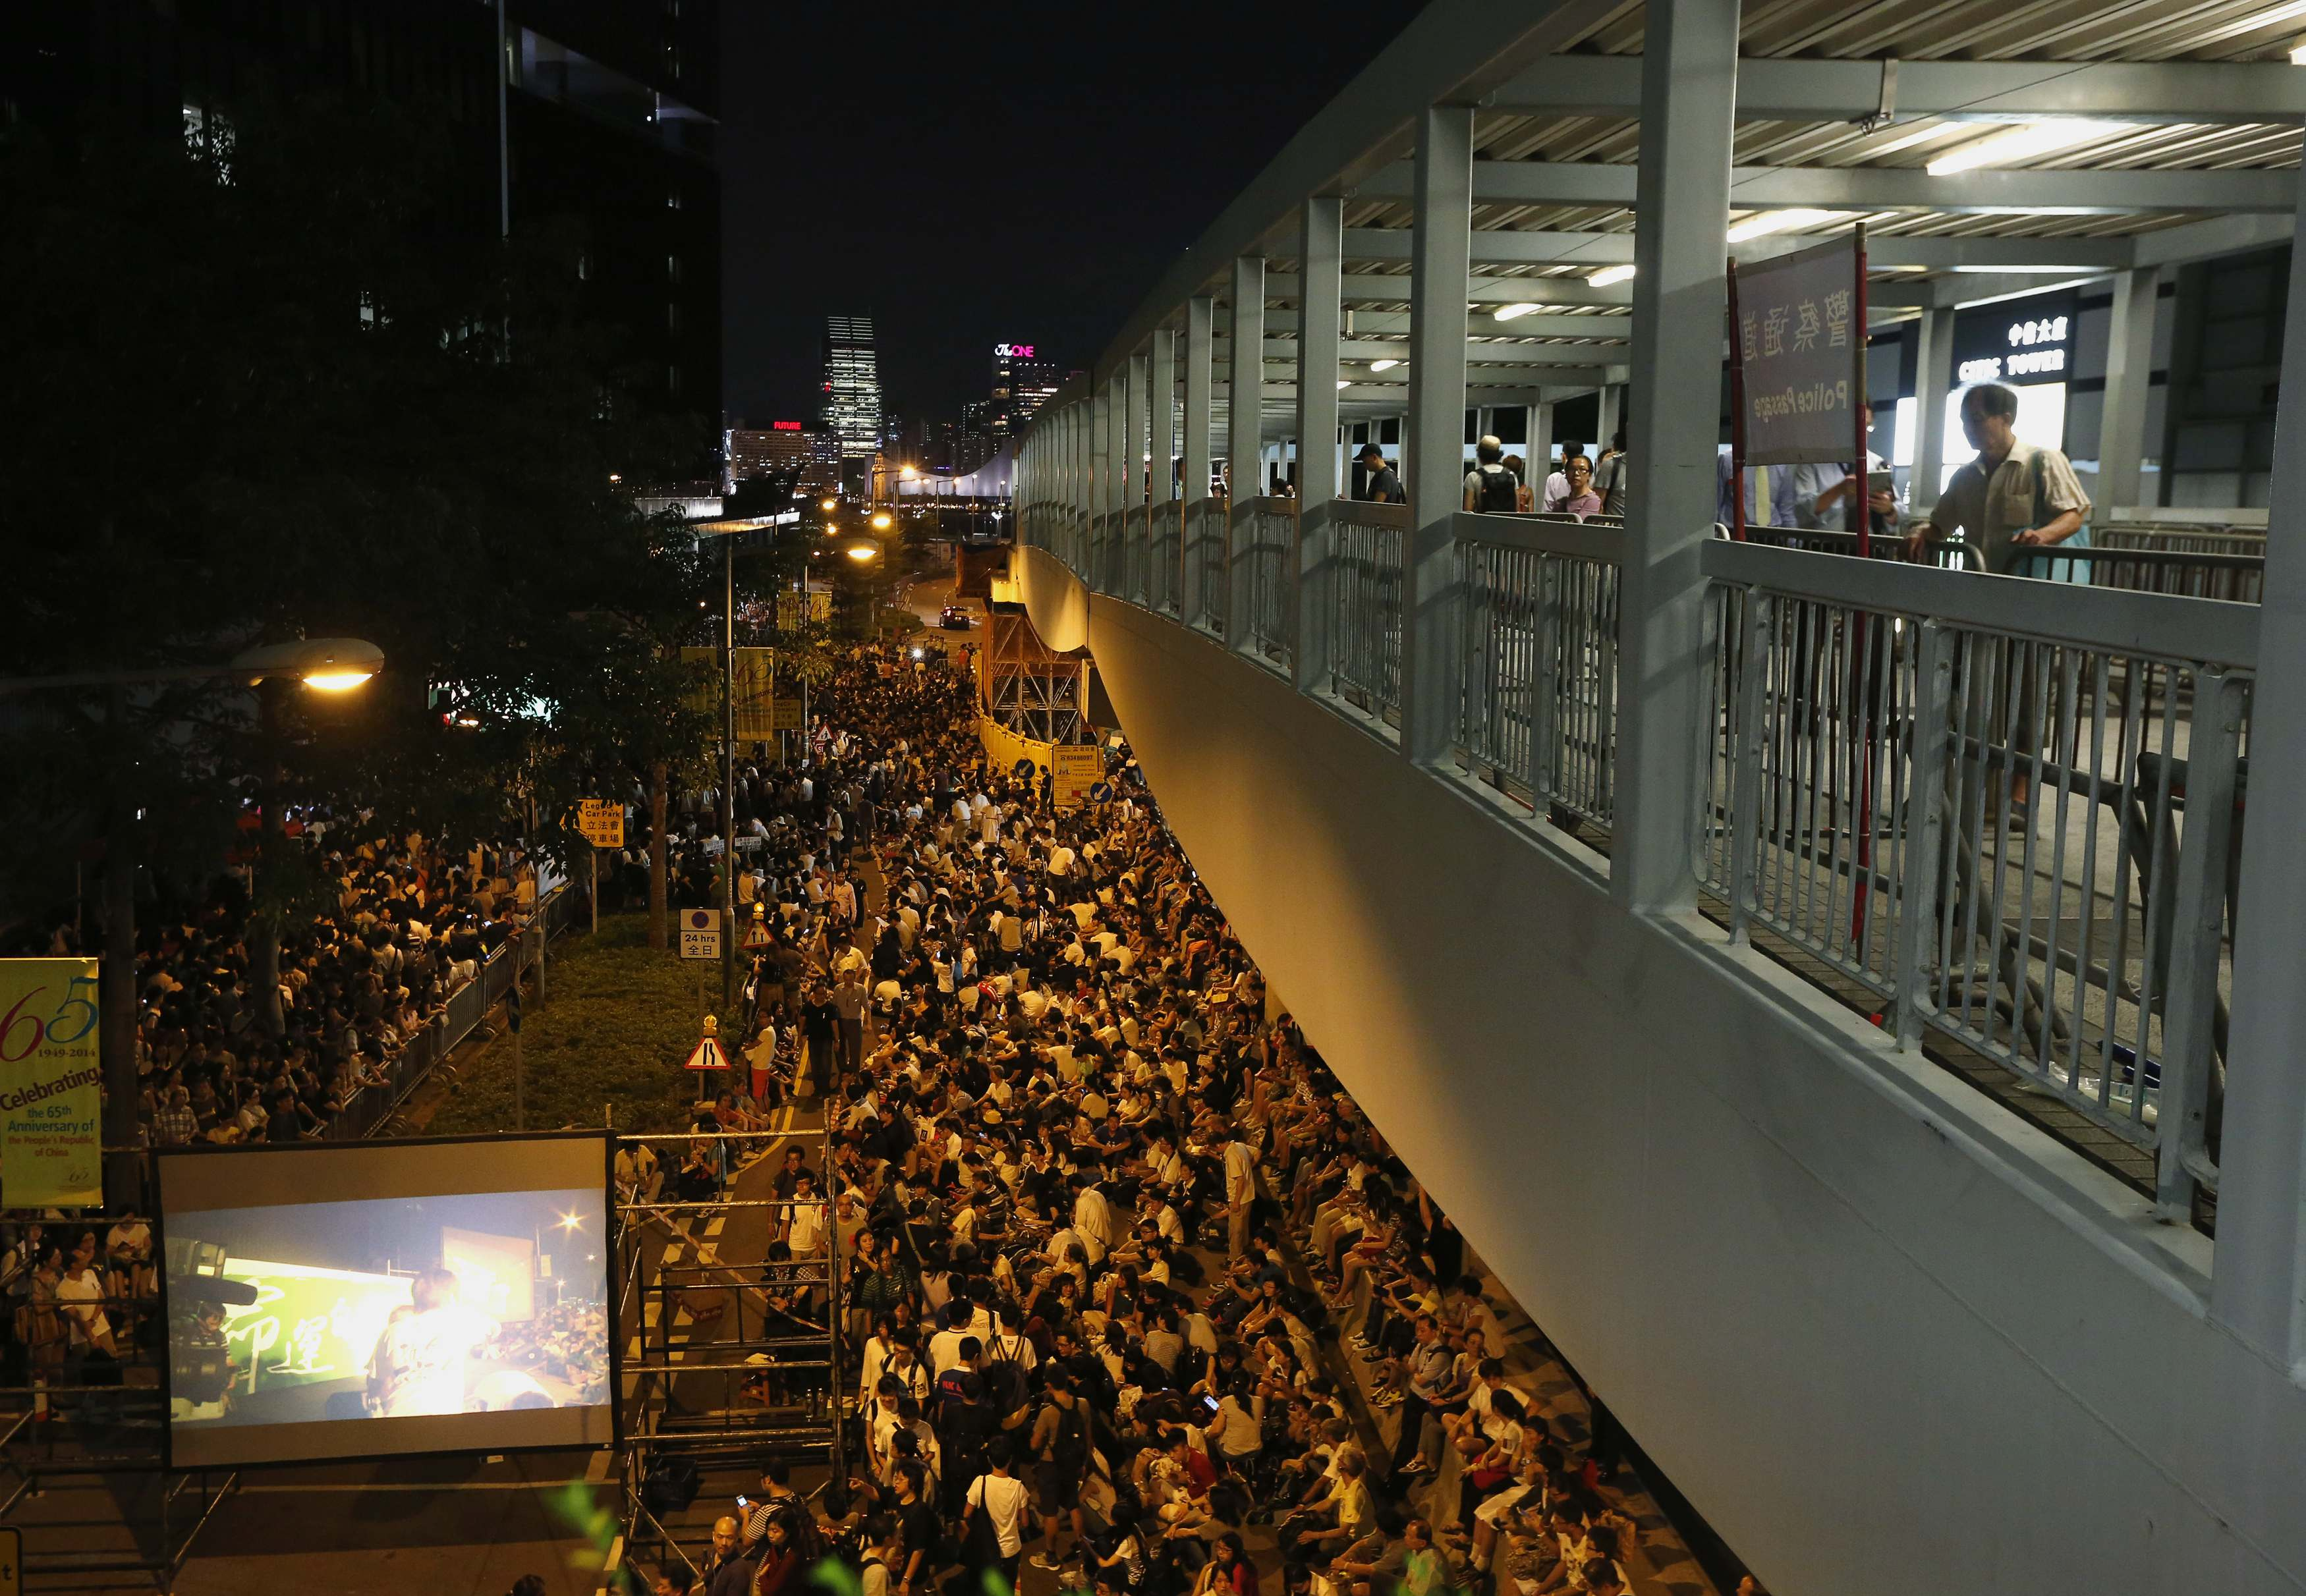 Hong Kong Students Storm Government HQ to Demand Full Democracy